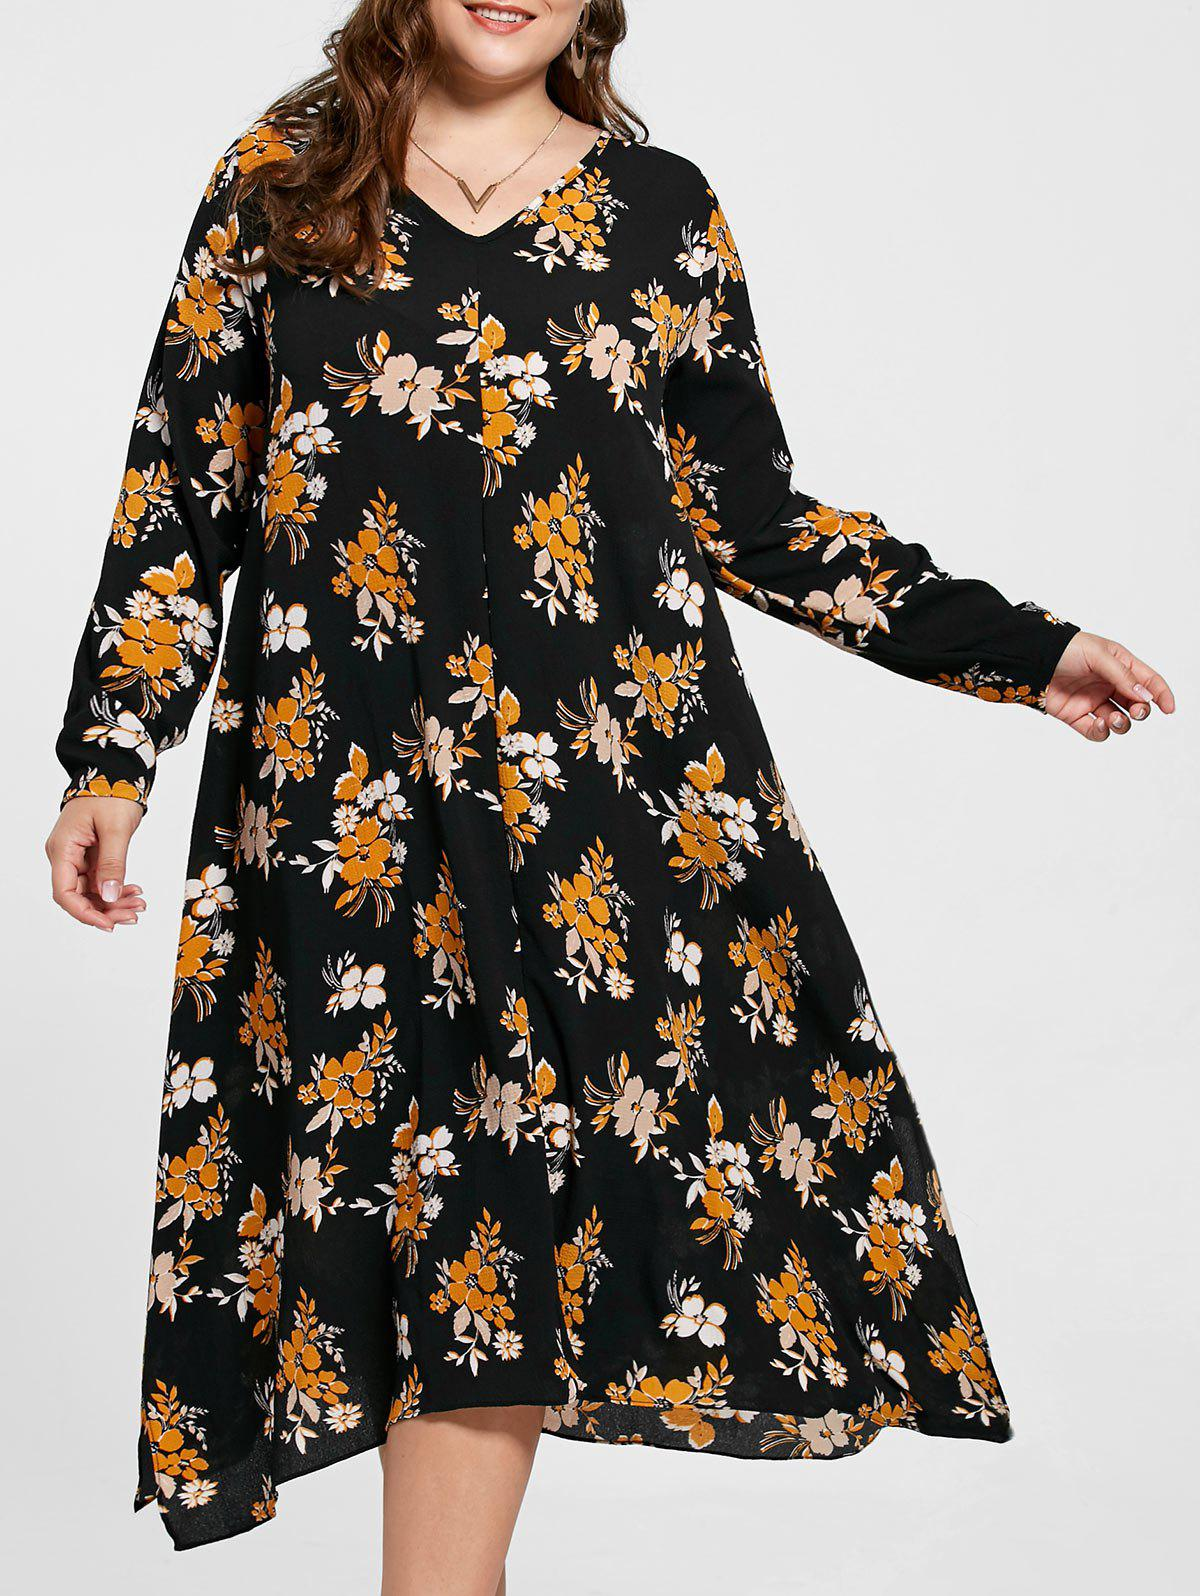 Plus Size Handkerchief Floral Print Dress - BLACK 2XL